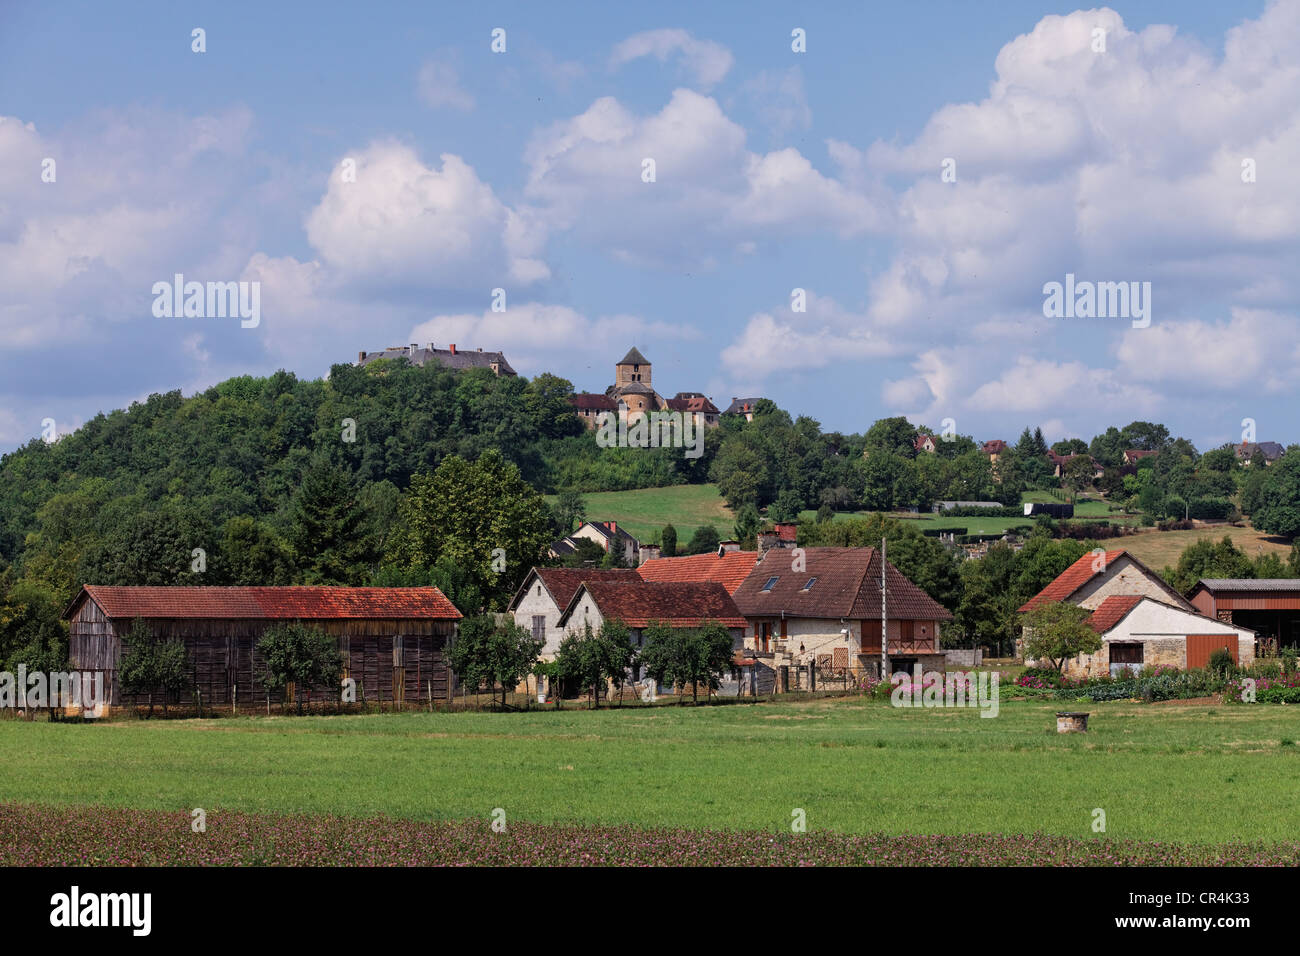 Village of Cavagnac, Quercy, Lot, France, Europe - Stock Image